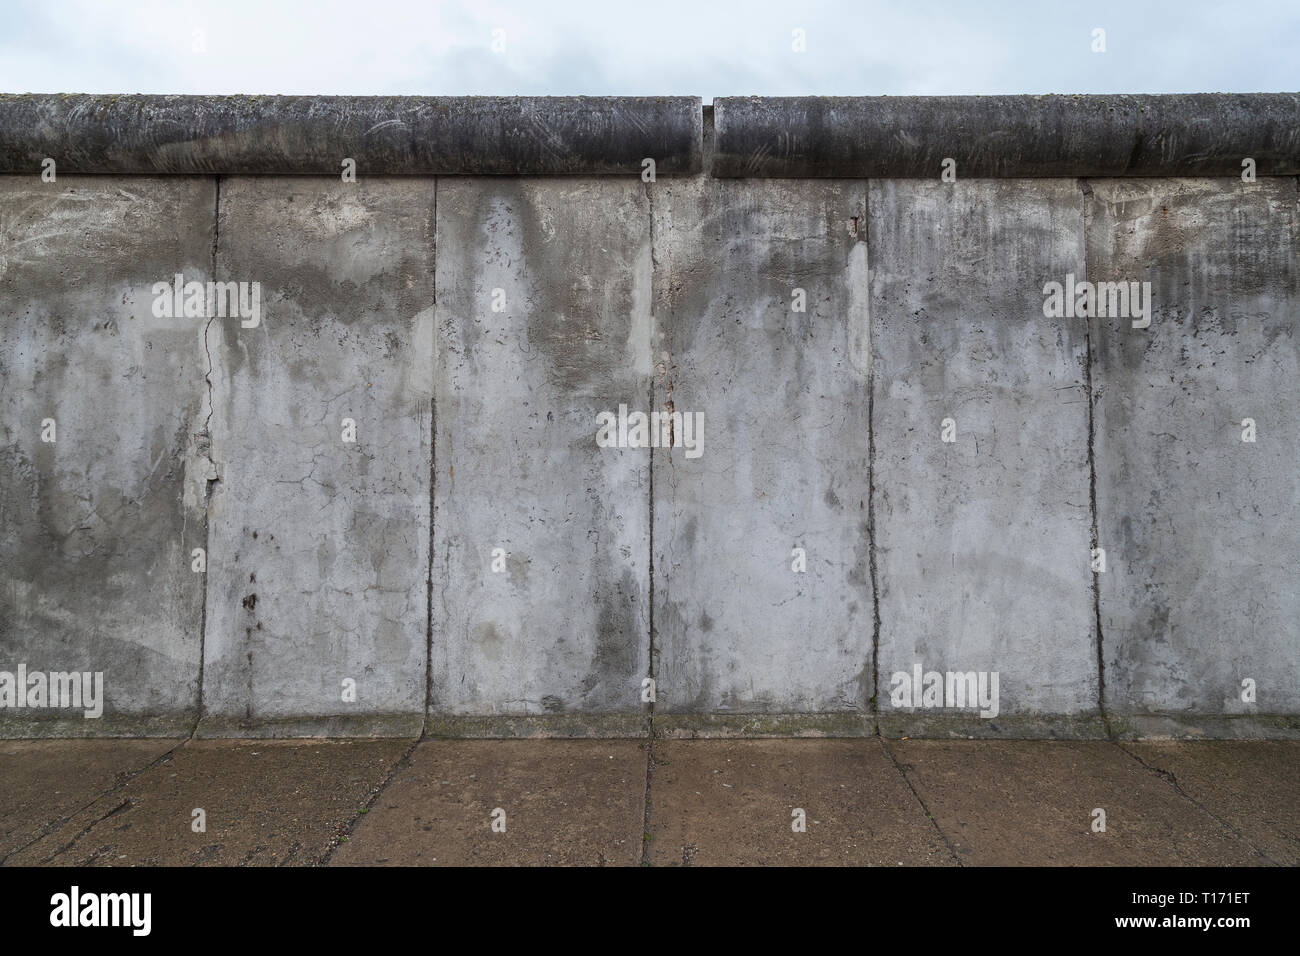 Front view of a section of the original Berlin Wall at the Berlin Wall Memorial (Berliner Mauer) in Berlin, Germany, on a cloudy day. Stock Photo